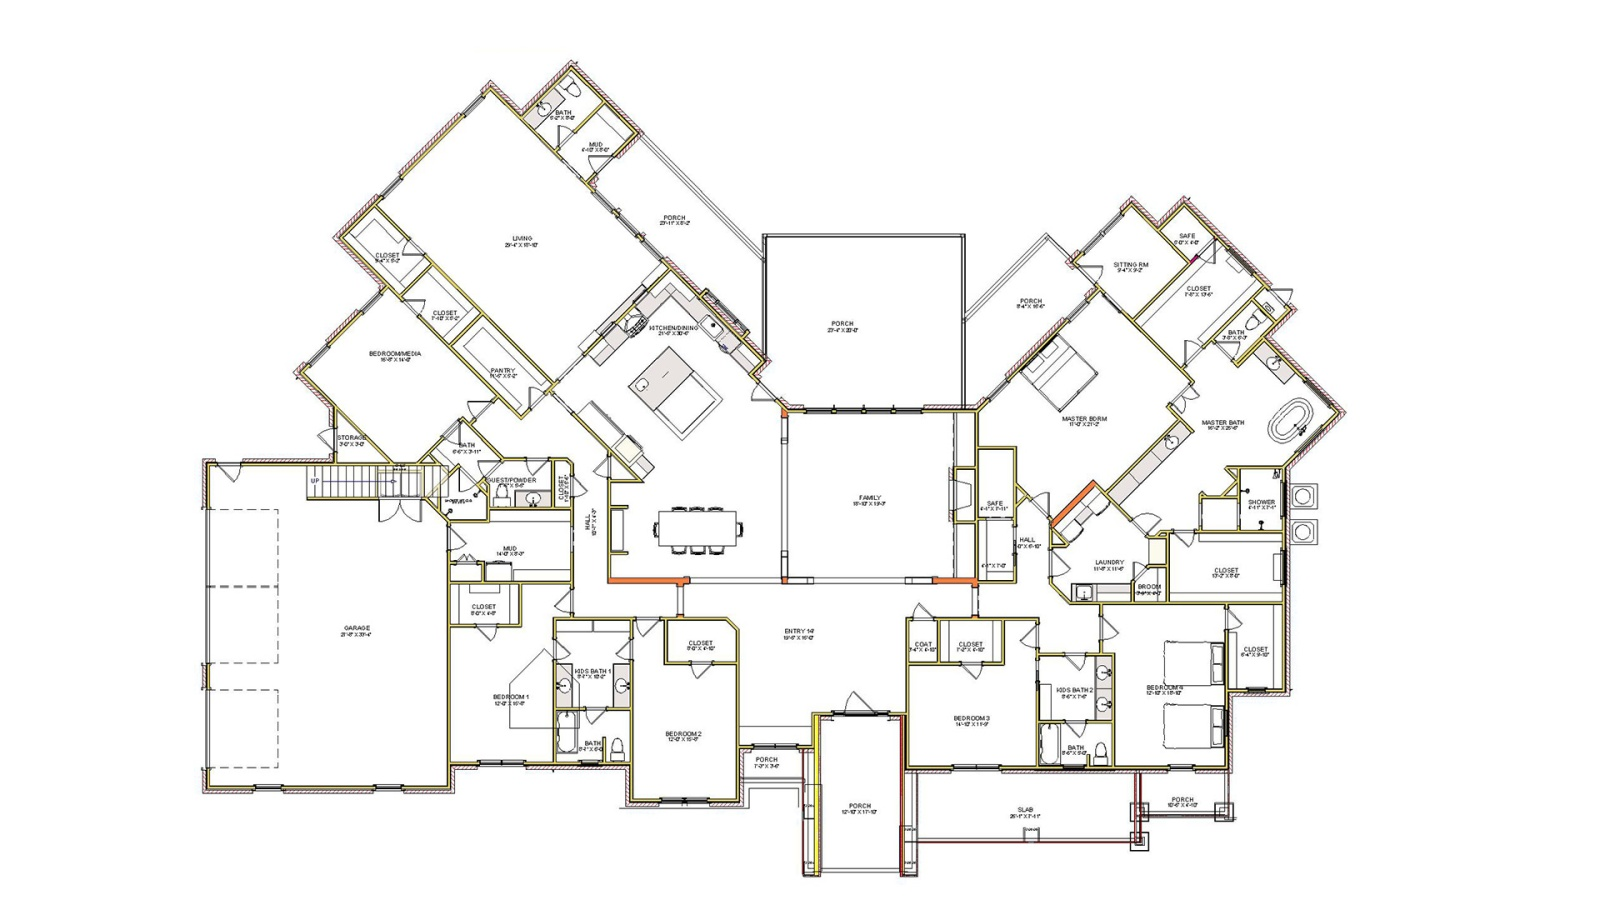 5 Bedrooms Bedrooms, ,5 BathroomsBathrooms,Custom Home,Featured Home Plans,1033